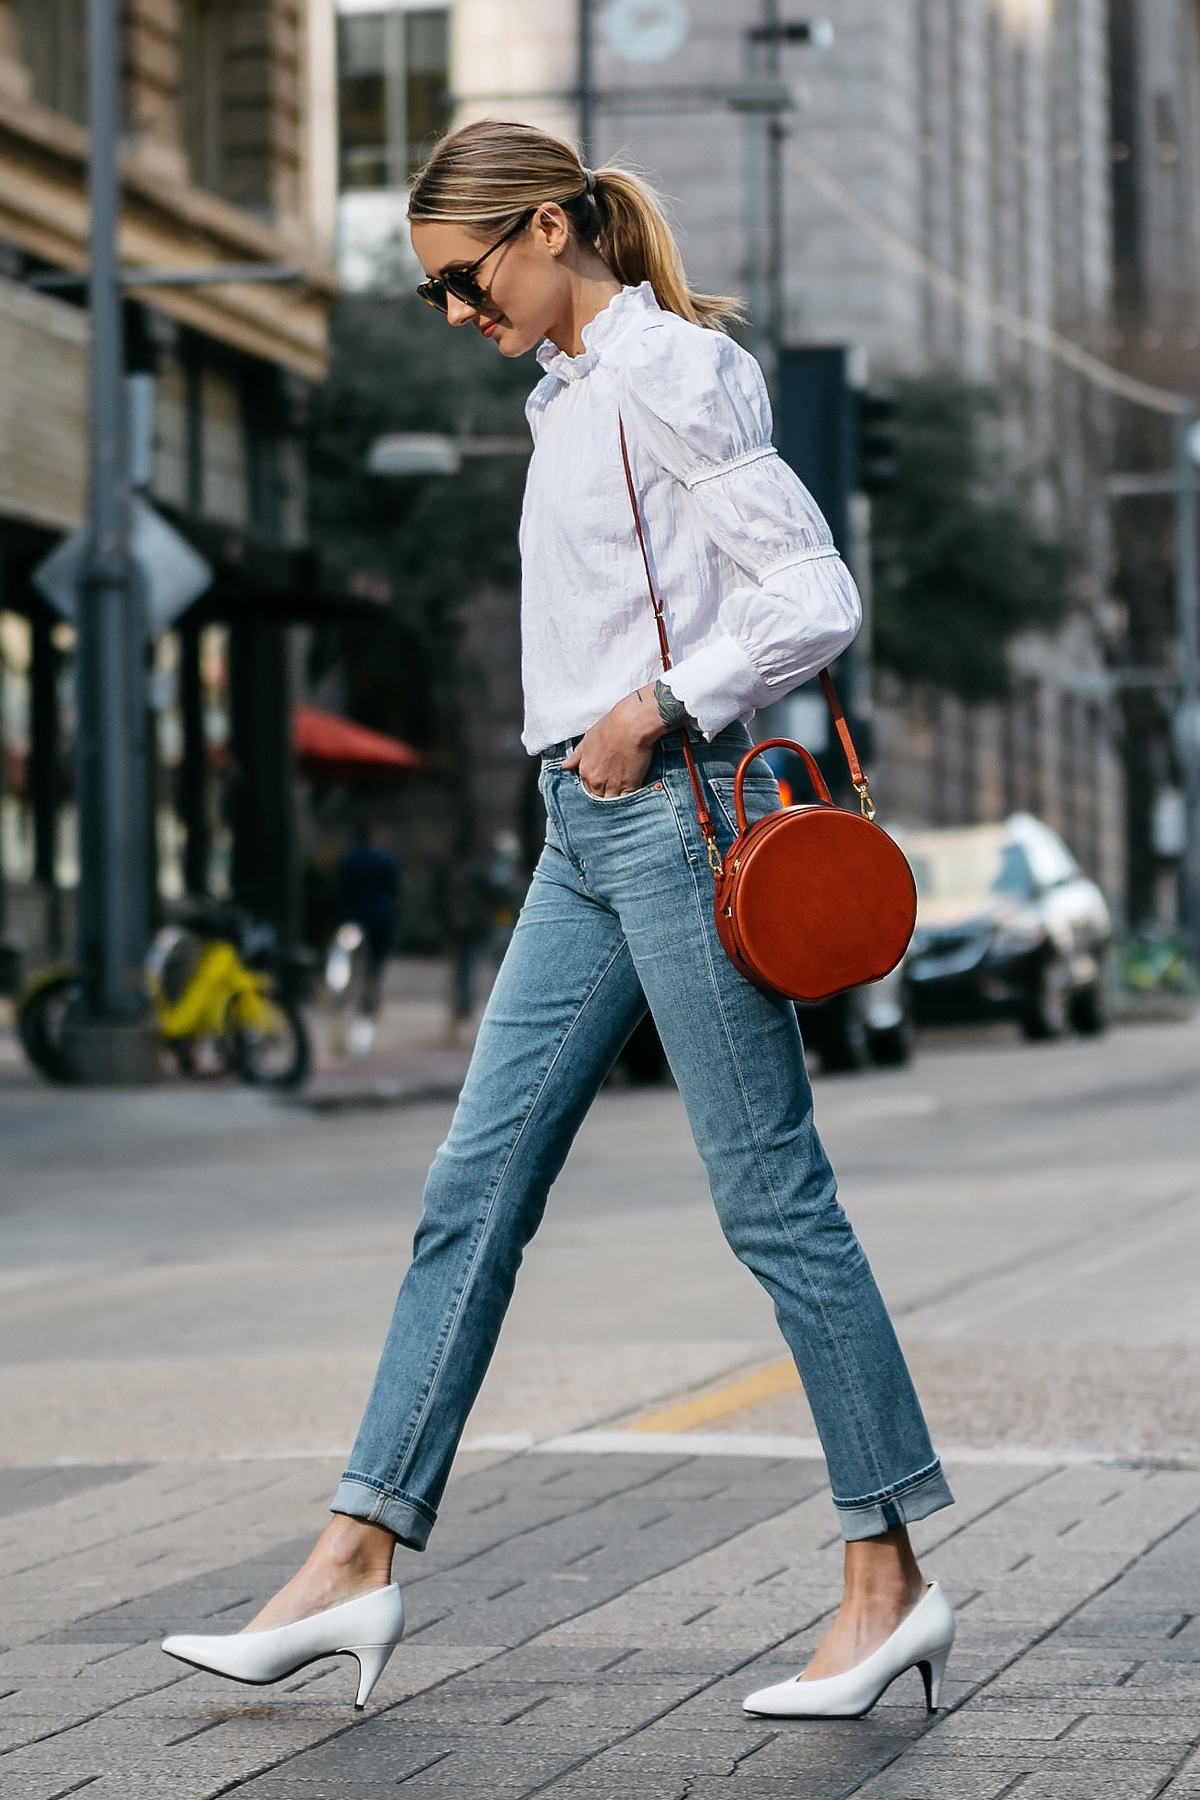 Blonde Woman Wearing Rebecca Taylor White Ruffle Top Relaxed Denim Jeans Mansur Gavriel Circle Bag White Pumps Fashion Jackson Dallas Blogger Fashion Blogger Street Style